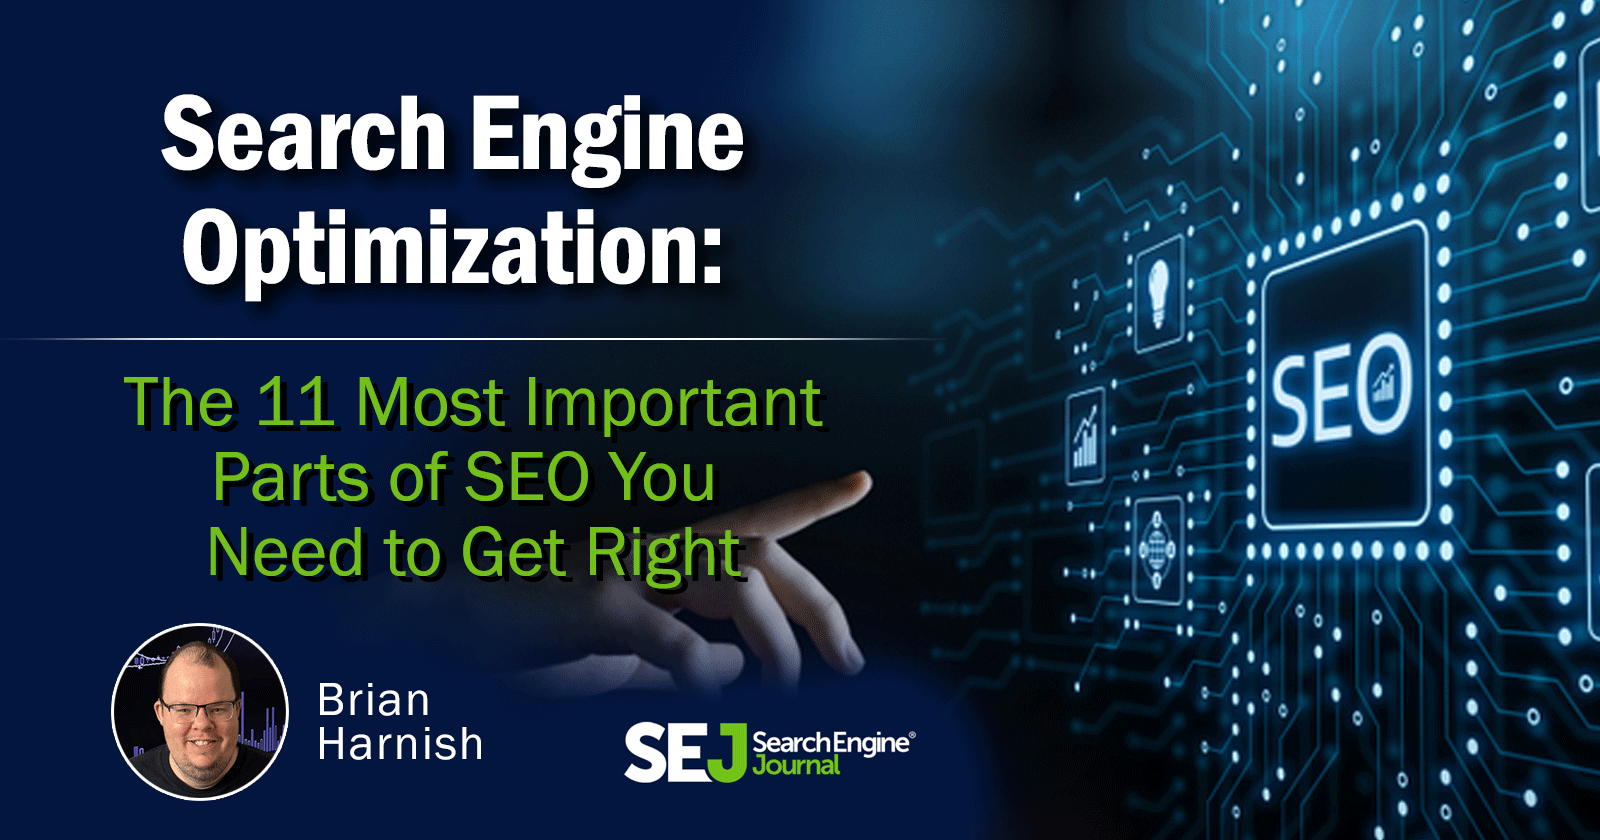 11 Important Parts of SEO You Need to Get Right | Search Engine Journal